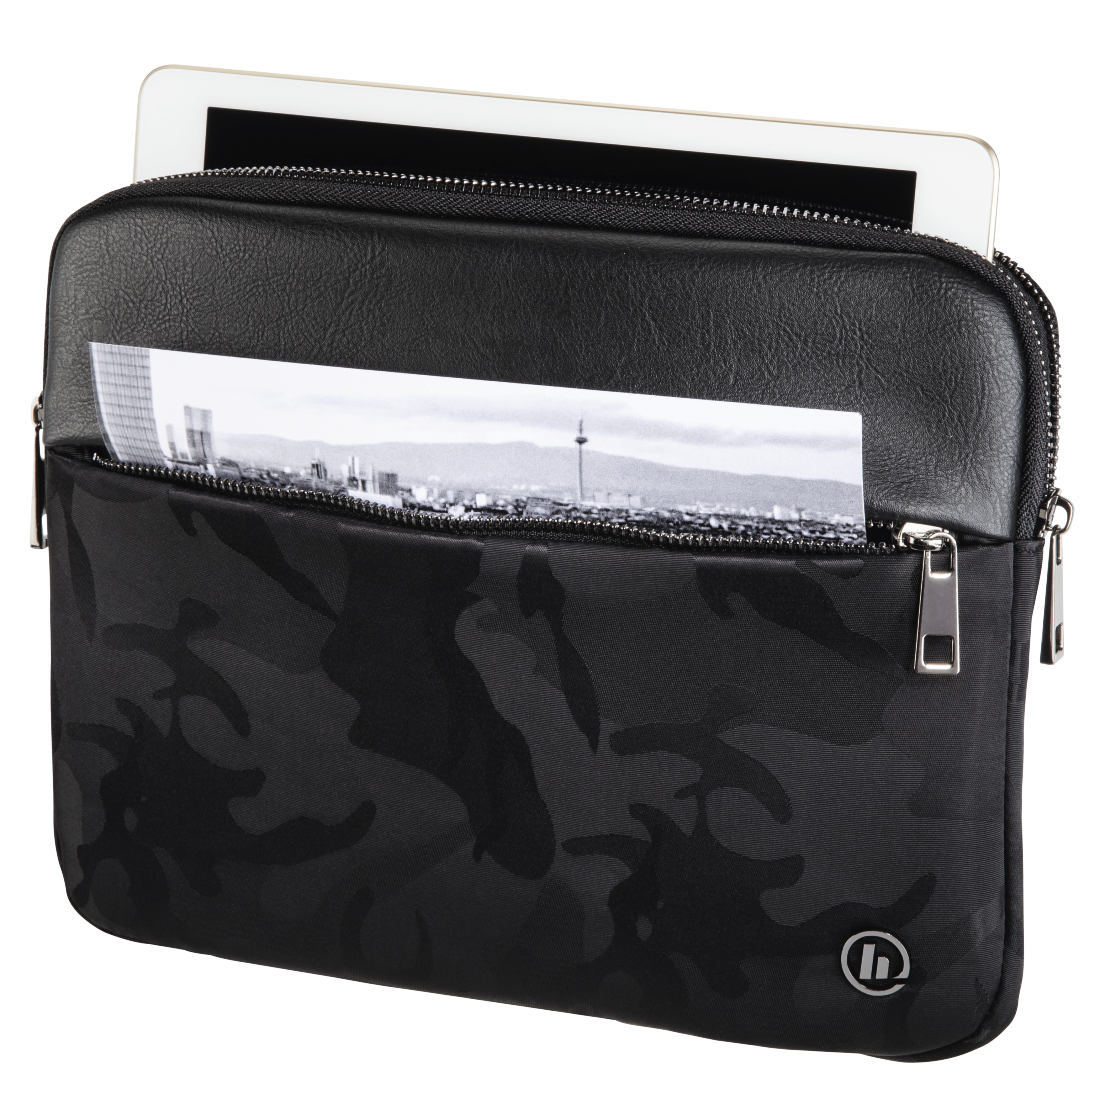 abx3 High-Res Image 3 - Hama, Mission Camo Tablet Sleeve, up to 25.6 cm (10.1), gun metal